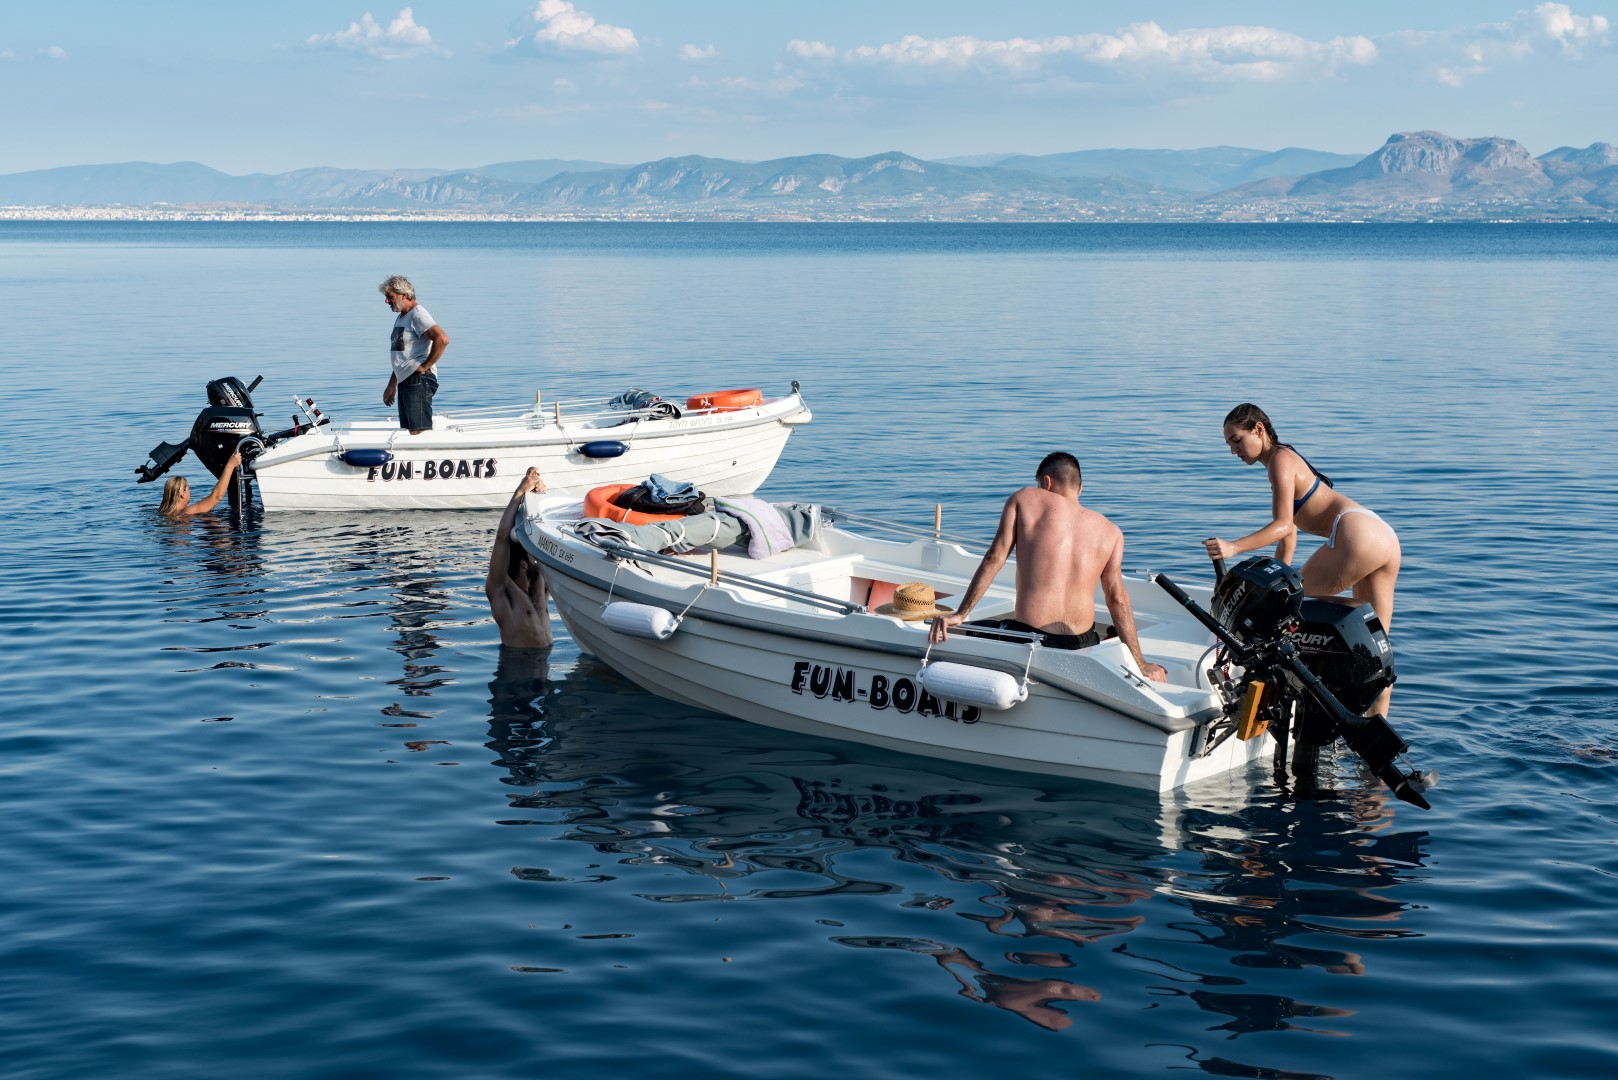 Boat trips for groups of friends with no licence boats powered by Lido Blue